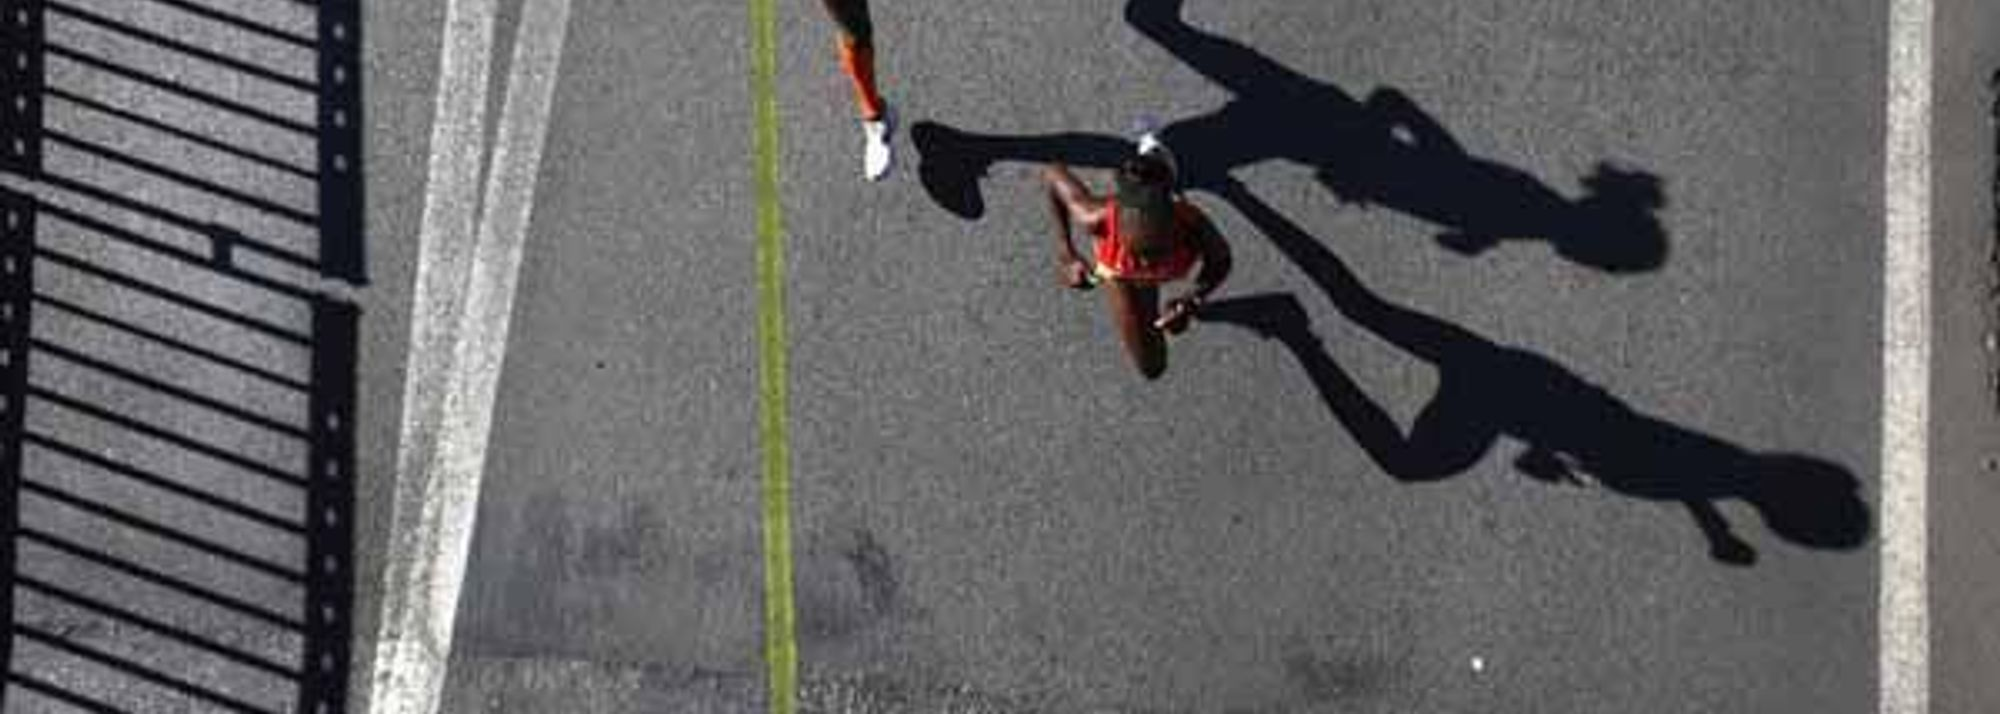 Lornah Kiplagat having insisted in midweek that 20 kilometres and the Half Marathon were her best racing distances proved her self-belief with a stunning performance at the 2nd IAAF World Road Running Championships in Udine.